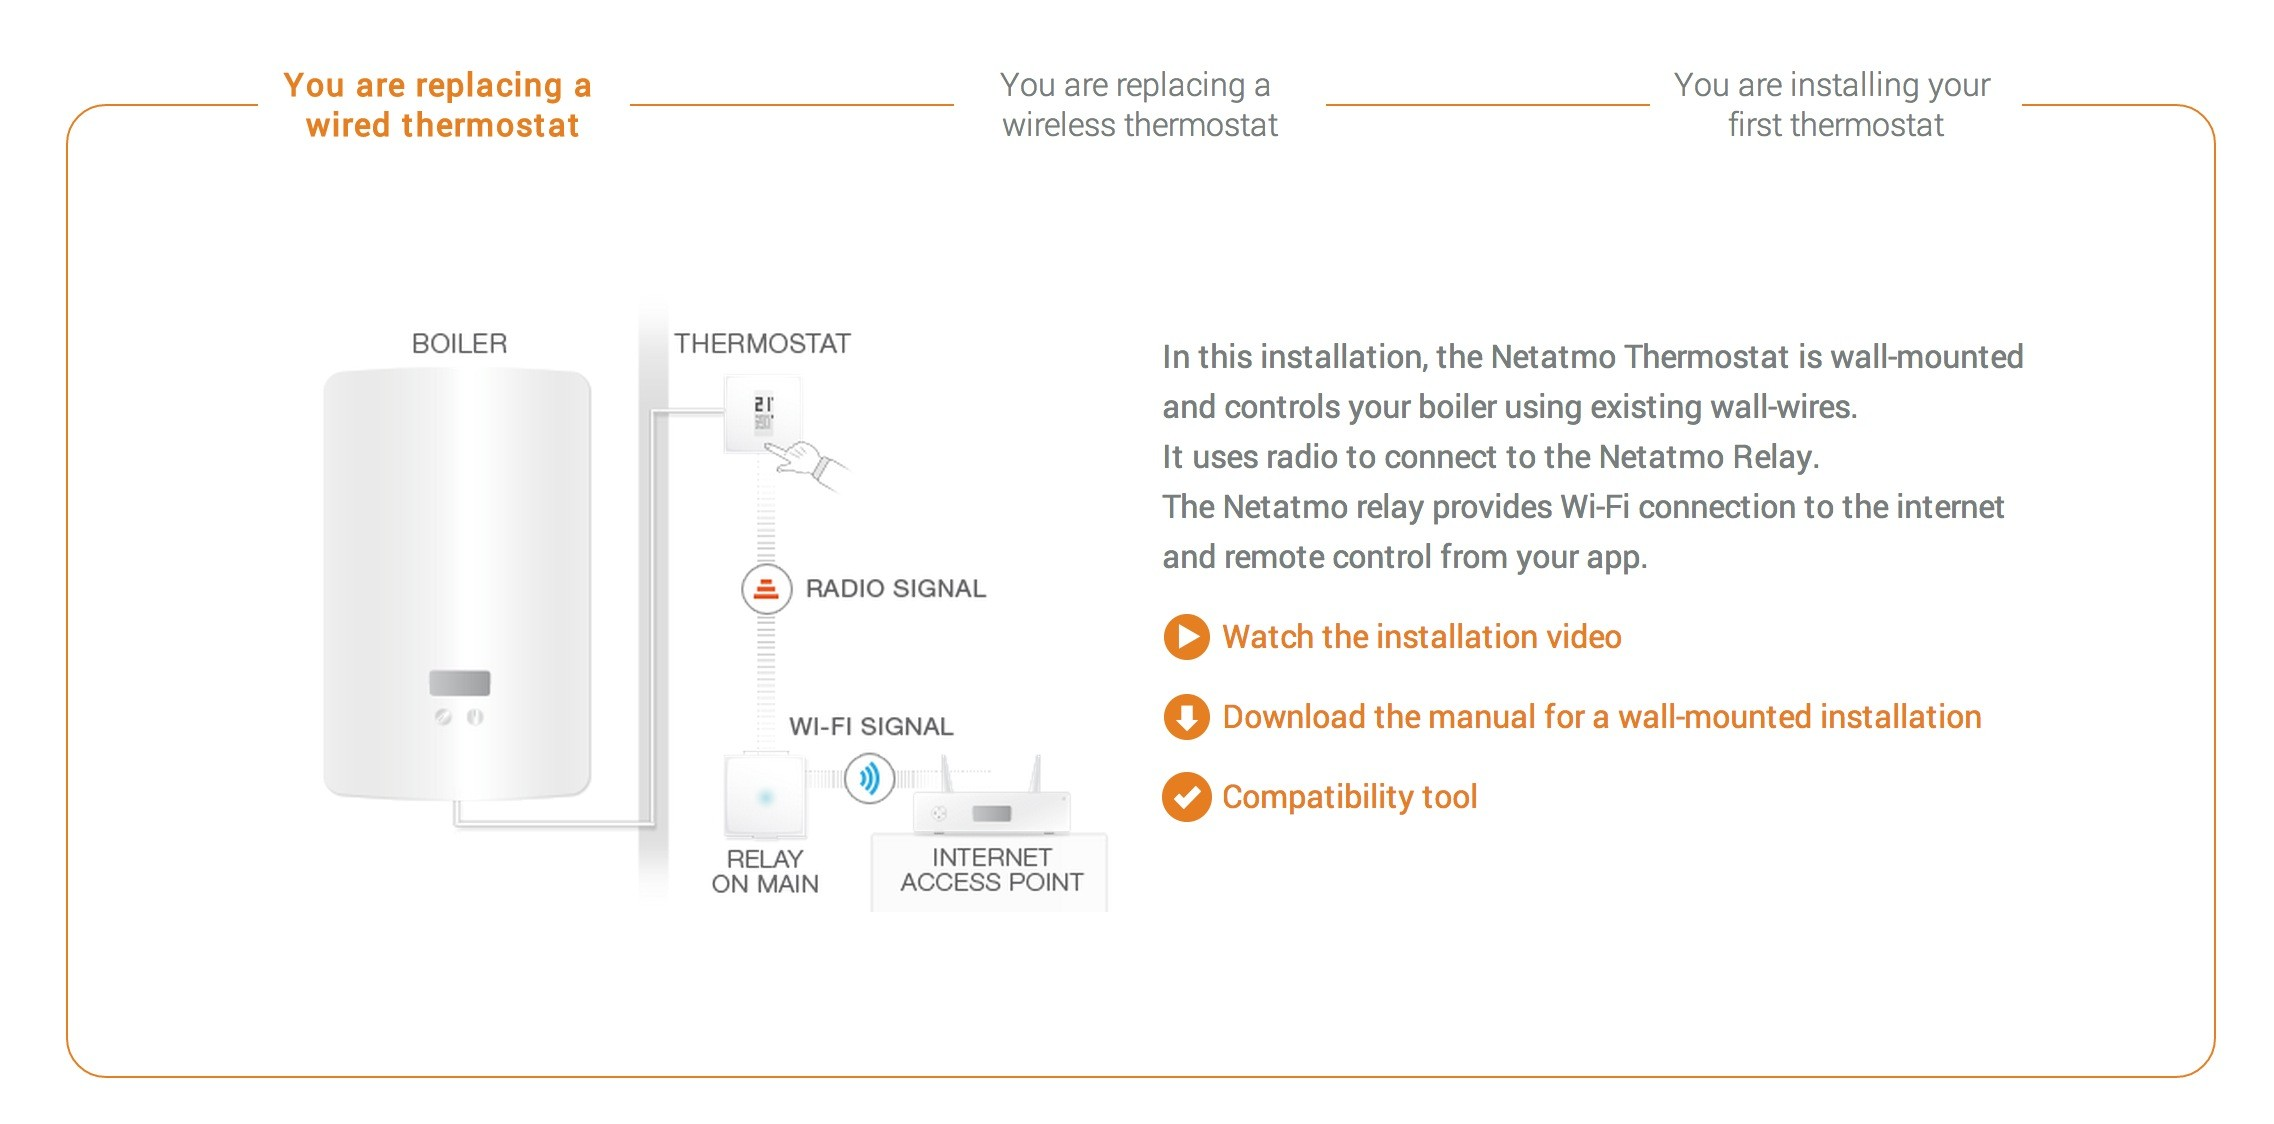 Short Review Of The Available Intelligent Thermostats Installing Thermostat Wiring Salus It5000 Tado 2nd Generation Netatmo Replacing Old Wired